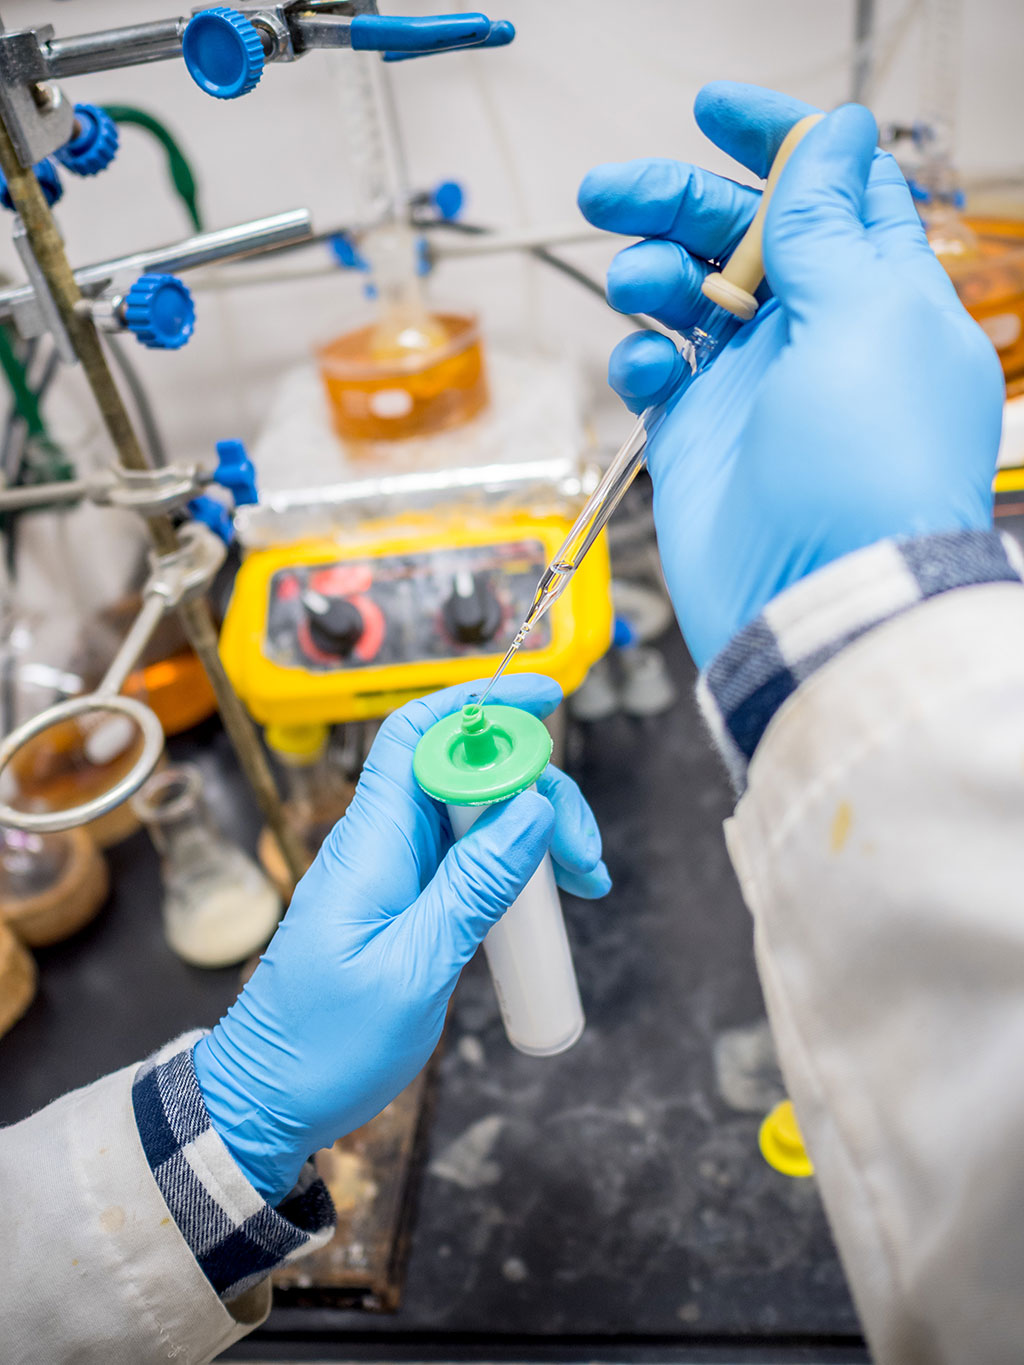 Gloved lab technicians hands injecting something into bottle